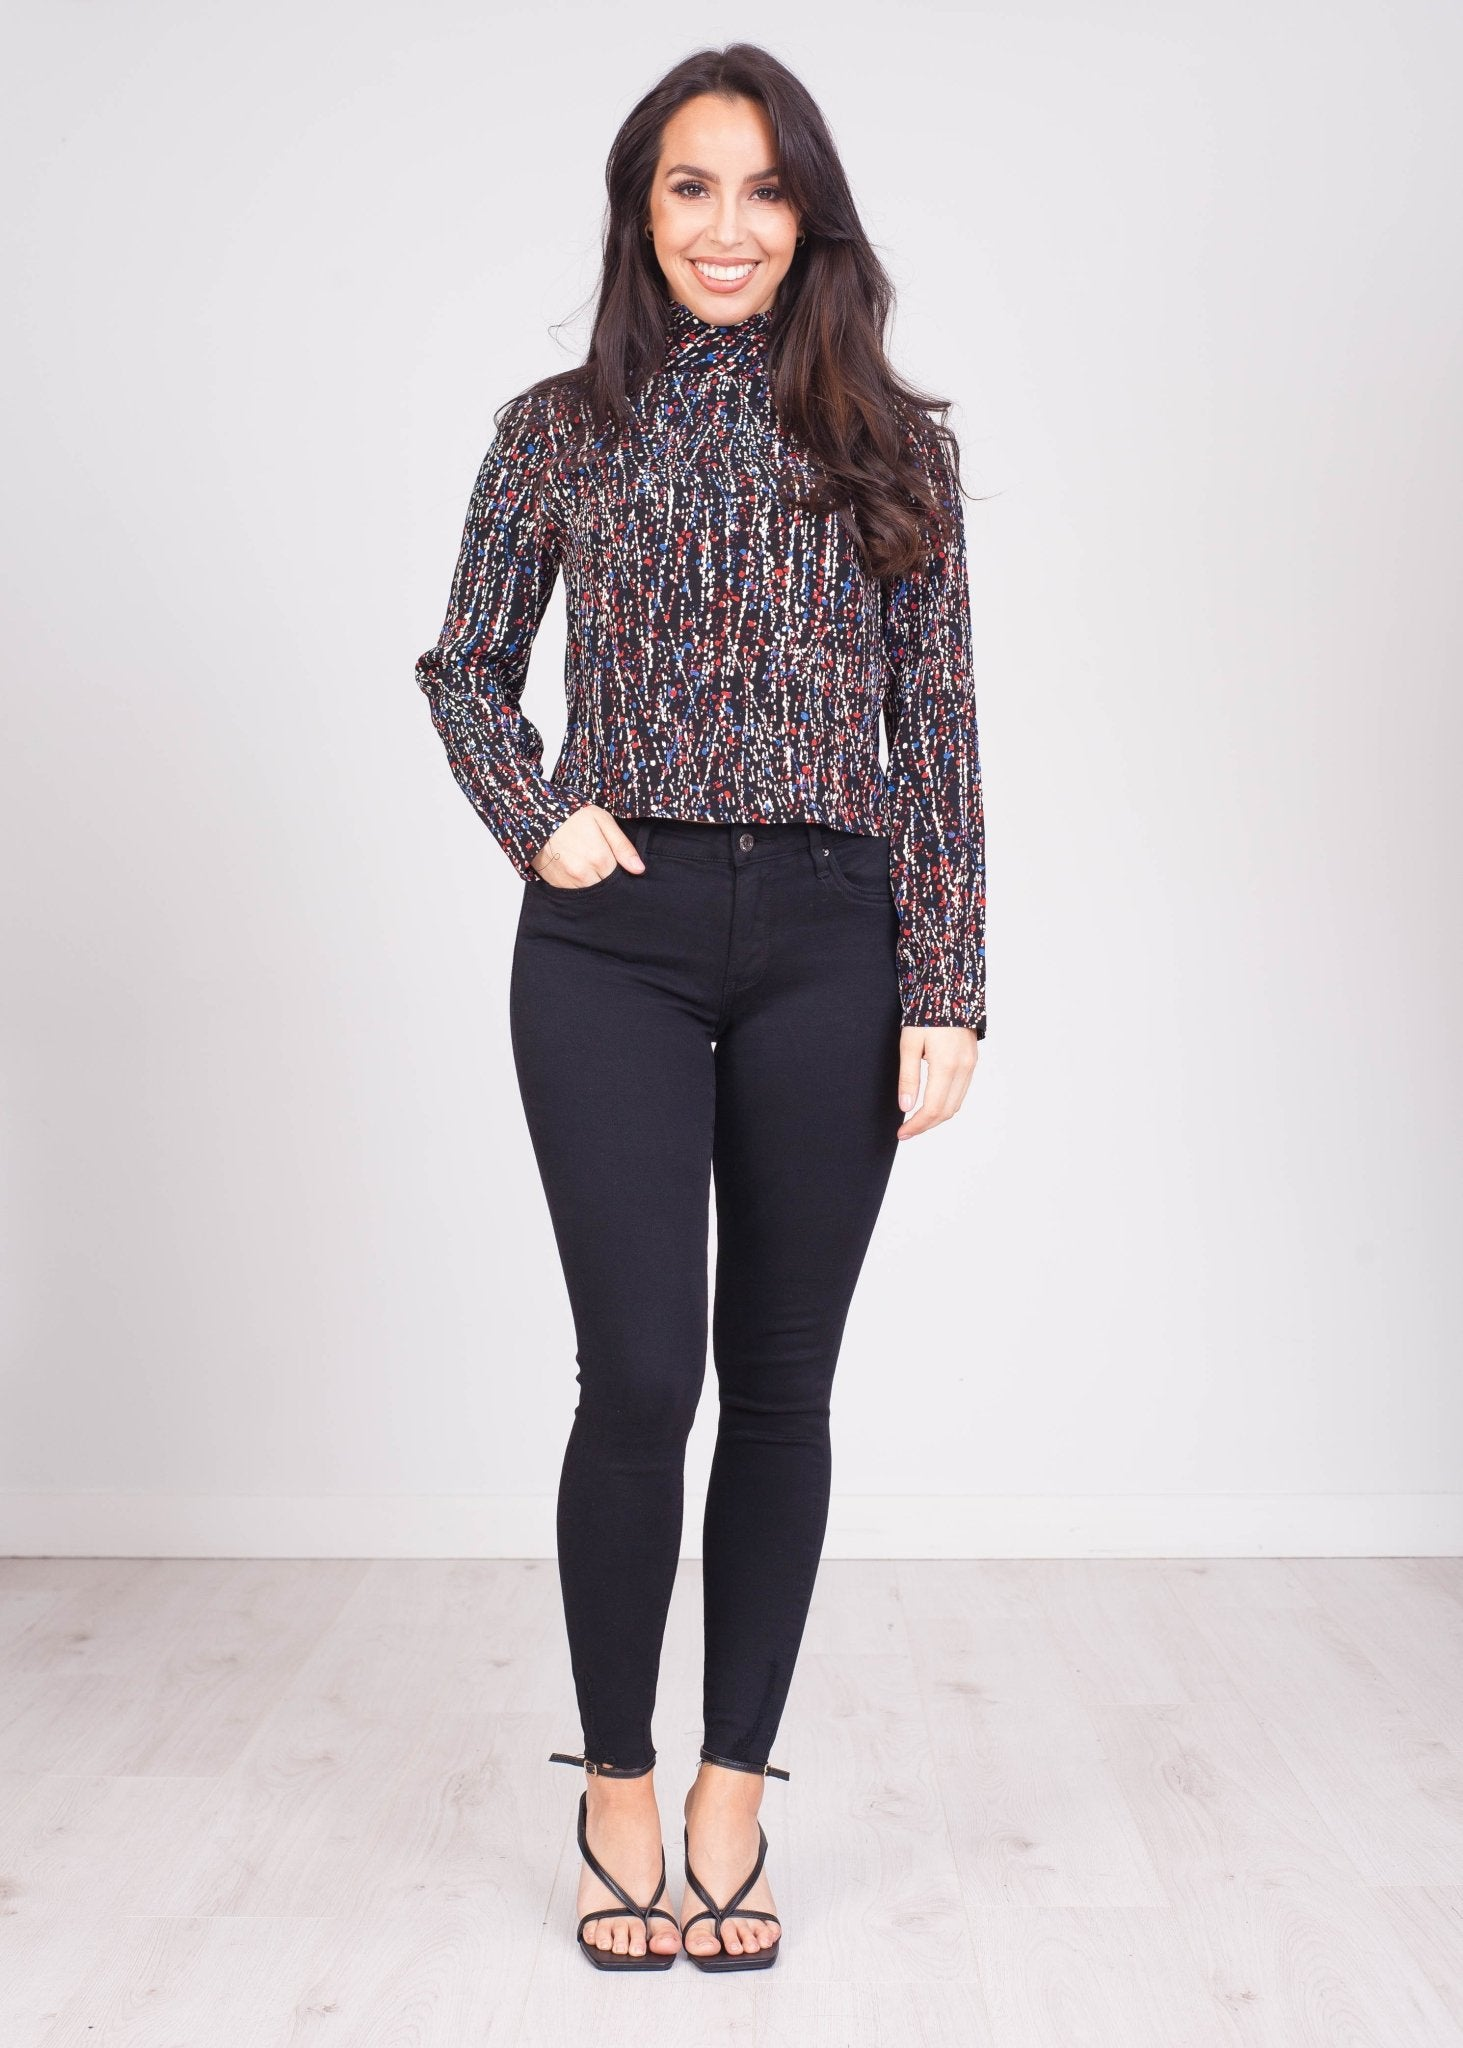 Eva Paint Speckled High Neck Blouse - The Walk in Wardrobe